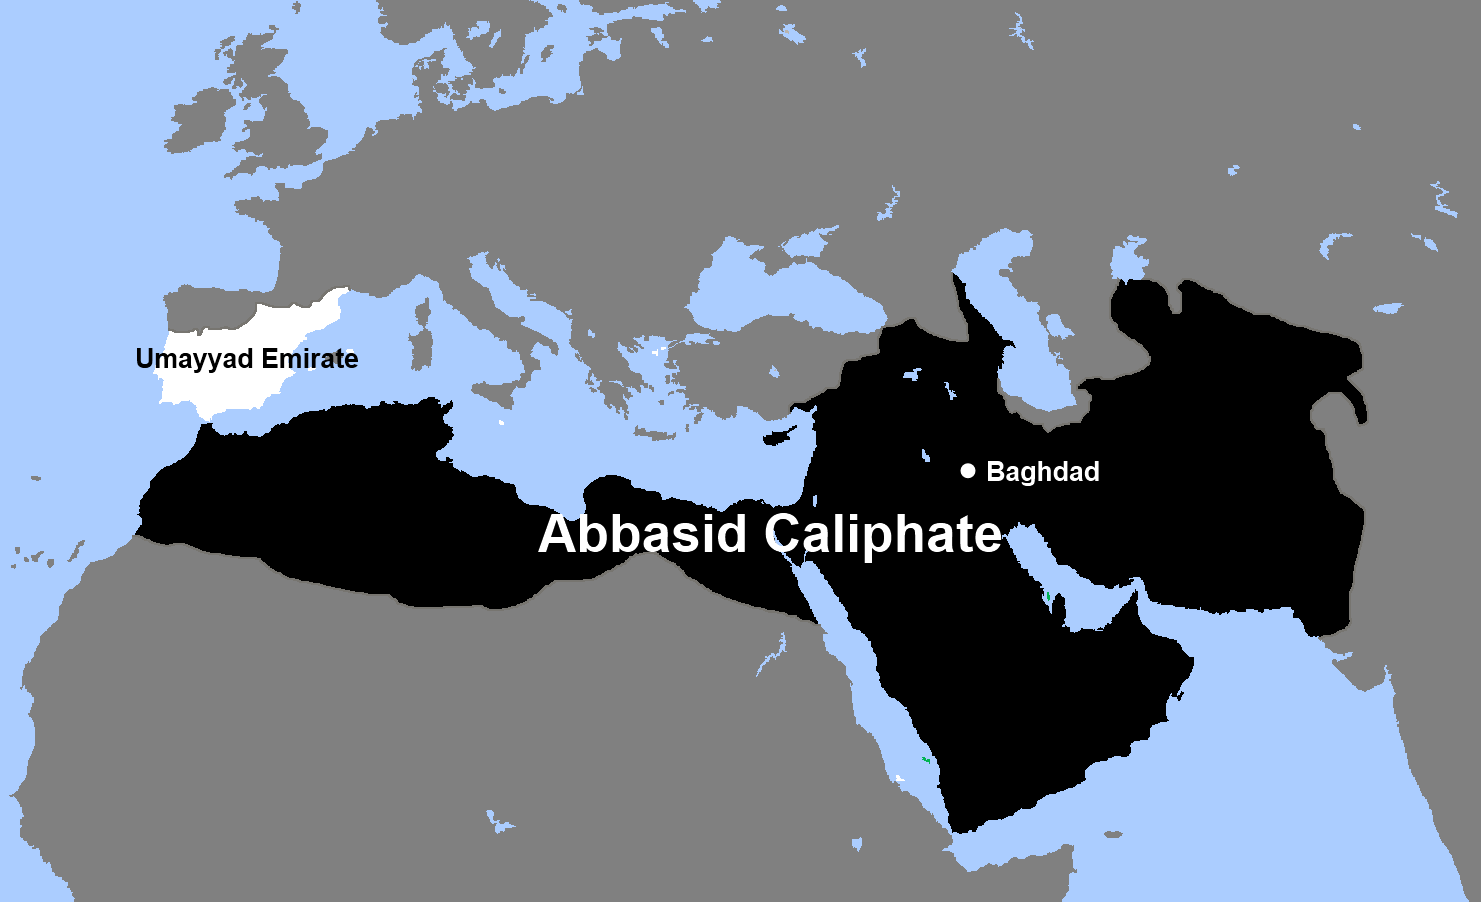 islam and abbasid caliphate The caliphate fantasy by khaled diab which refers to an islamic state presided over by a leader with both political and the abbasid caliphate.